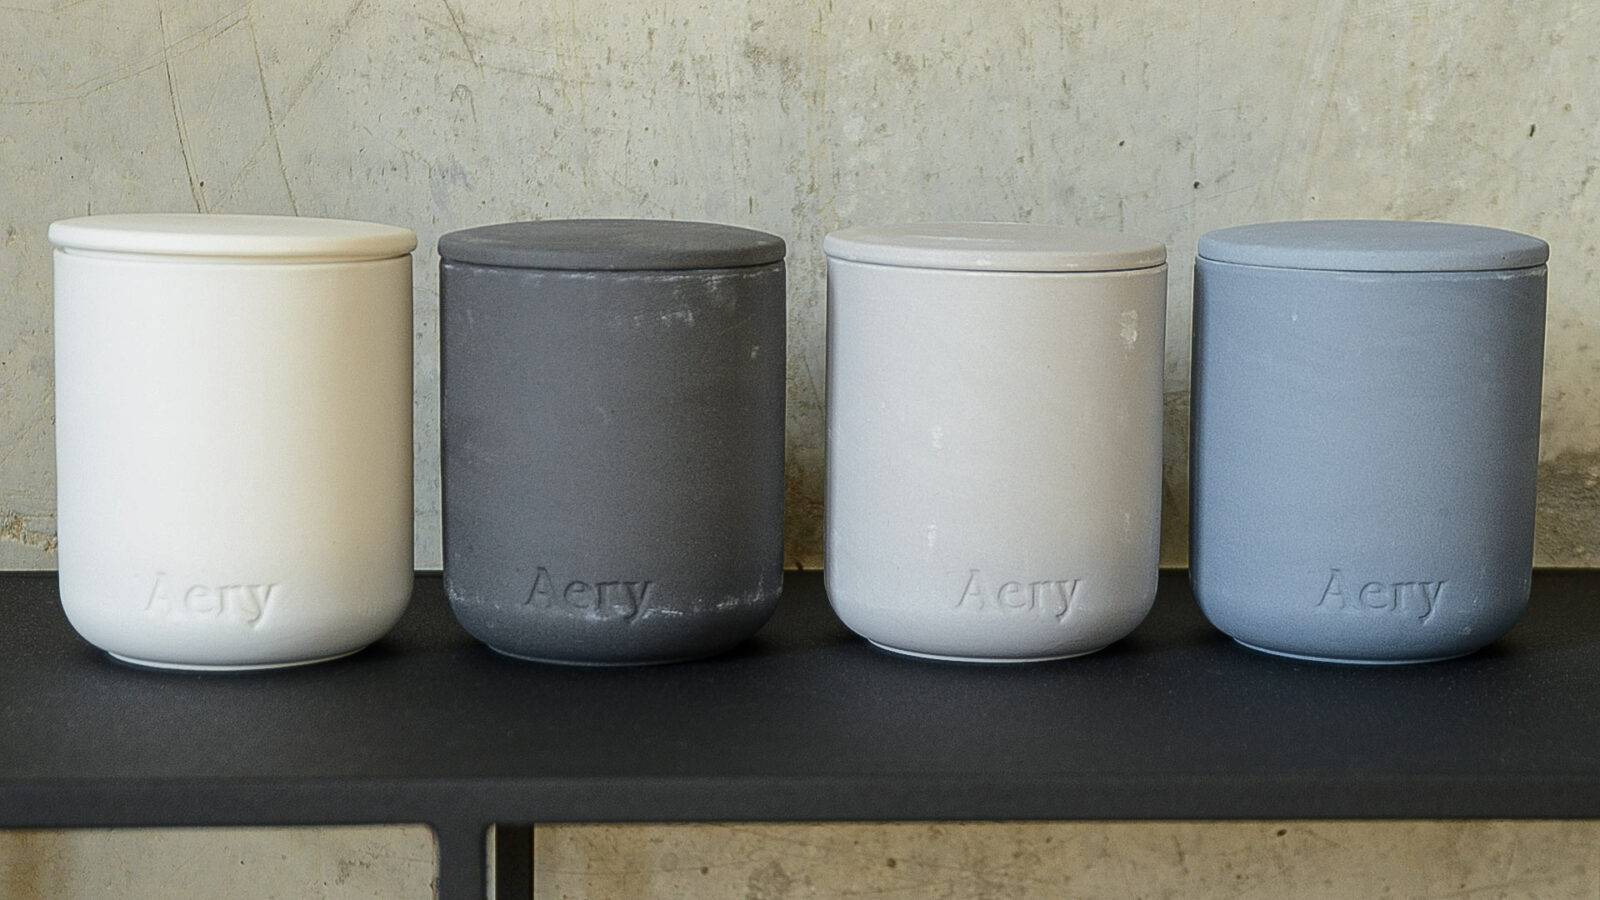 aery scented candles